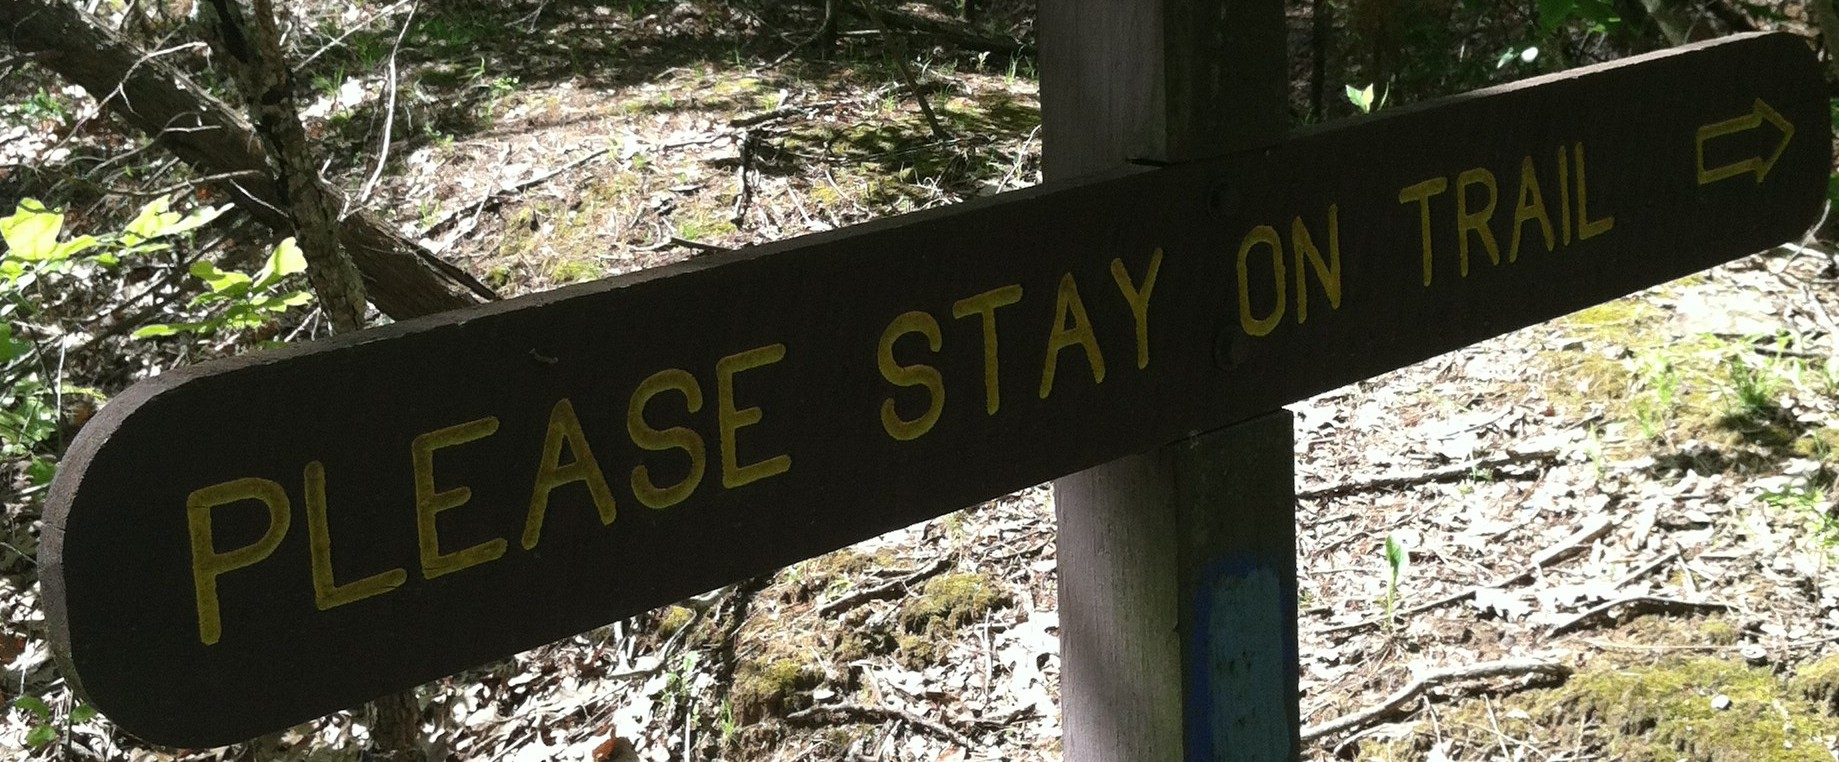 """PLEASE STAY ON THE TRAIL"" sign"